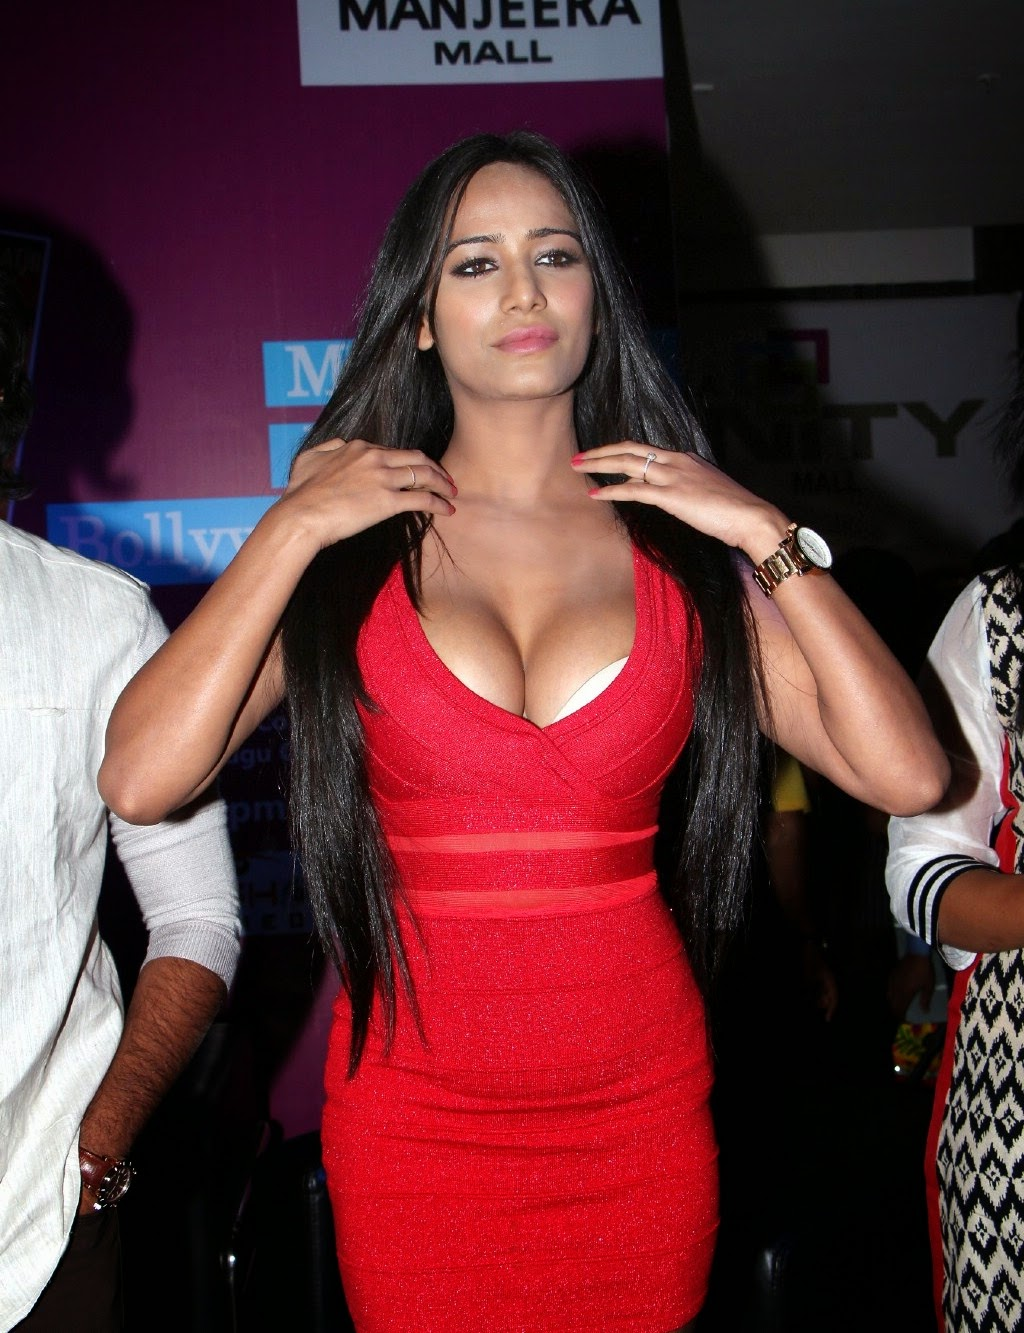 Indian Sexy Actress Poonam Pandey Hot Cleavage Gallery 241 Photos ...